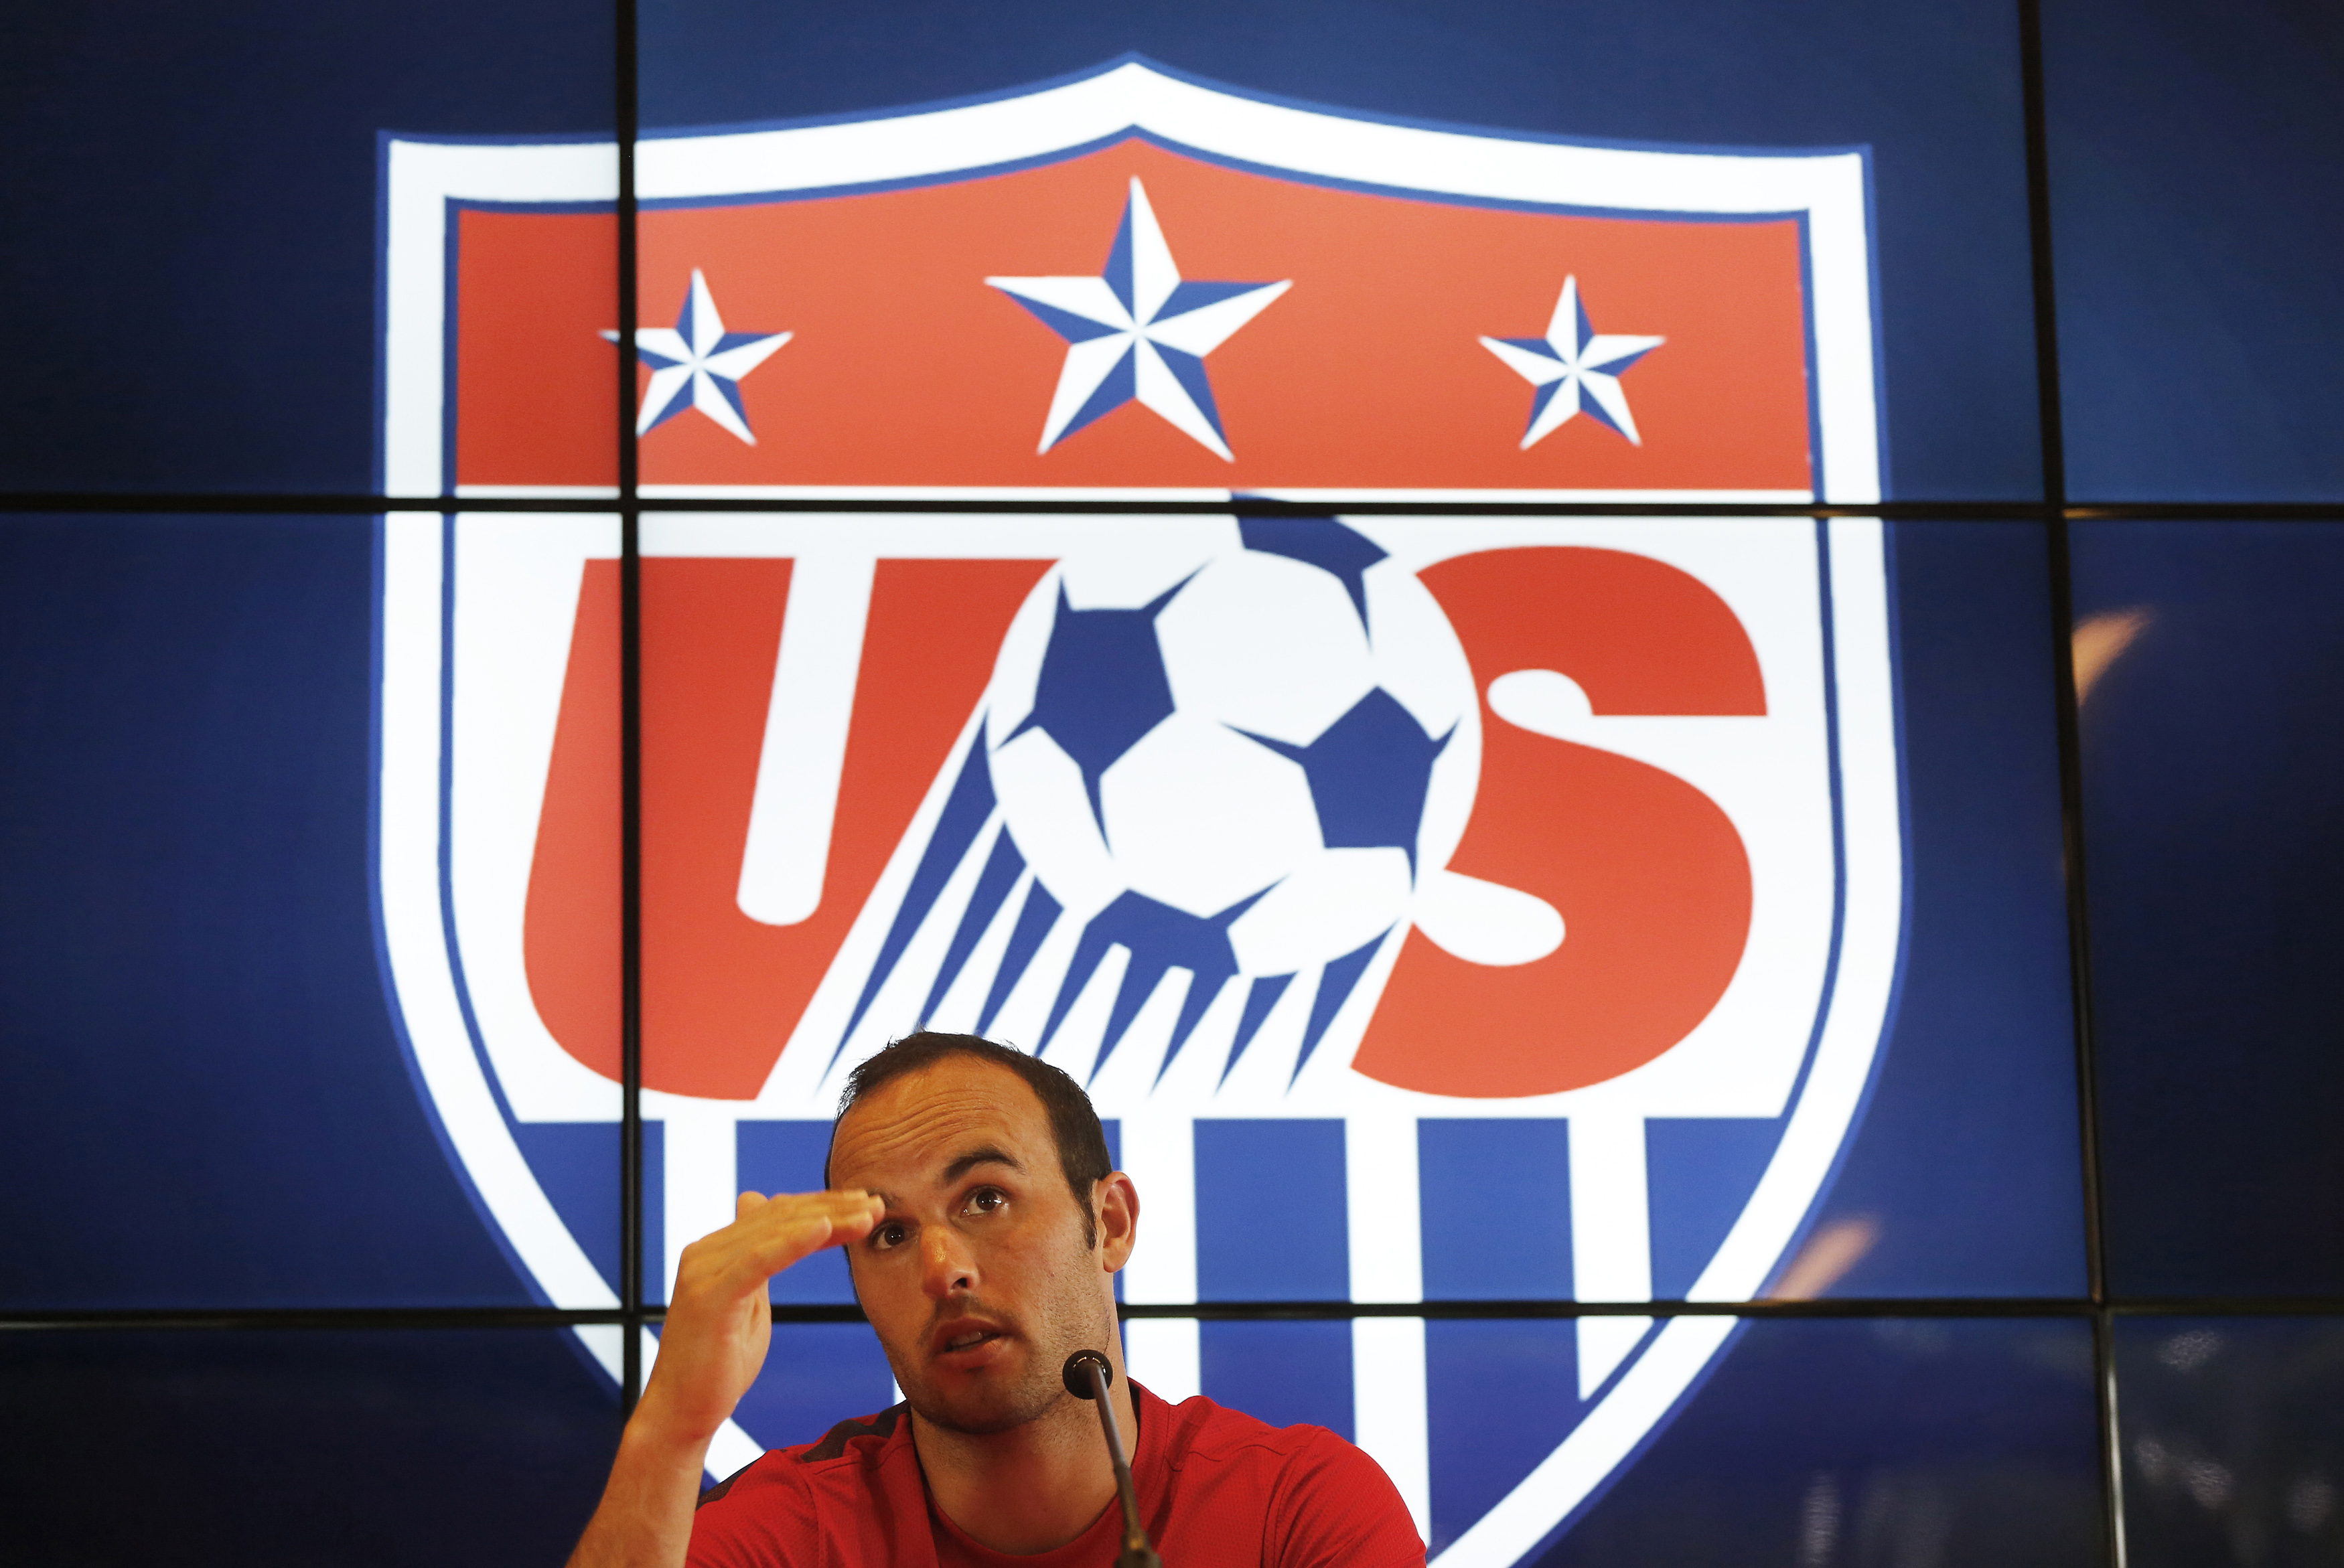 U.S. national soccer team player Landon Donovan, one of the anchors of the national soccer team for the last decade, was cut Thursday by coach Jurgen Klinsmann, who reduced his 30-man squad to the mandatory 23.